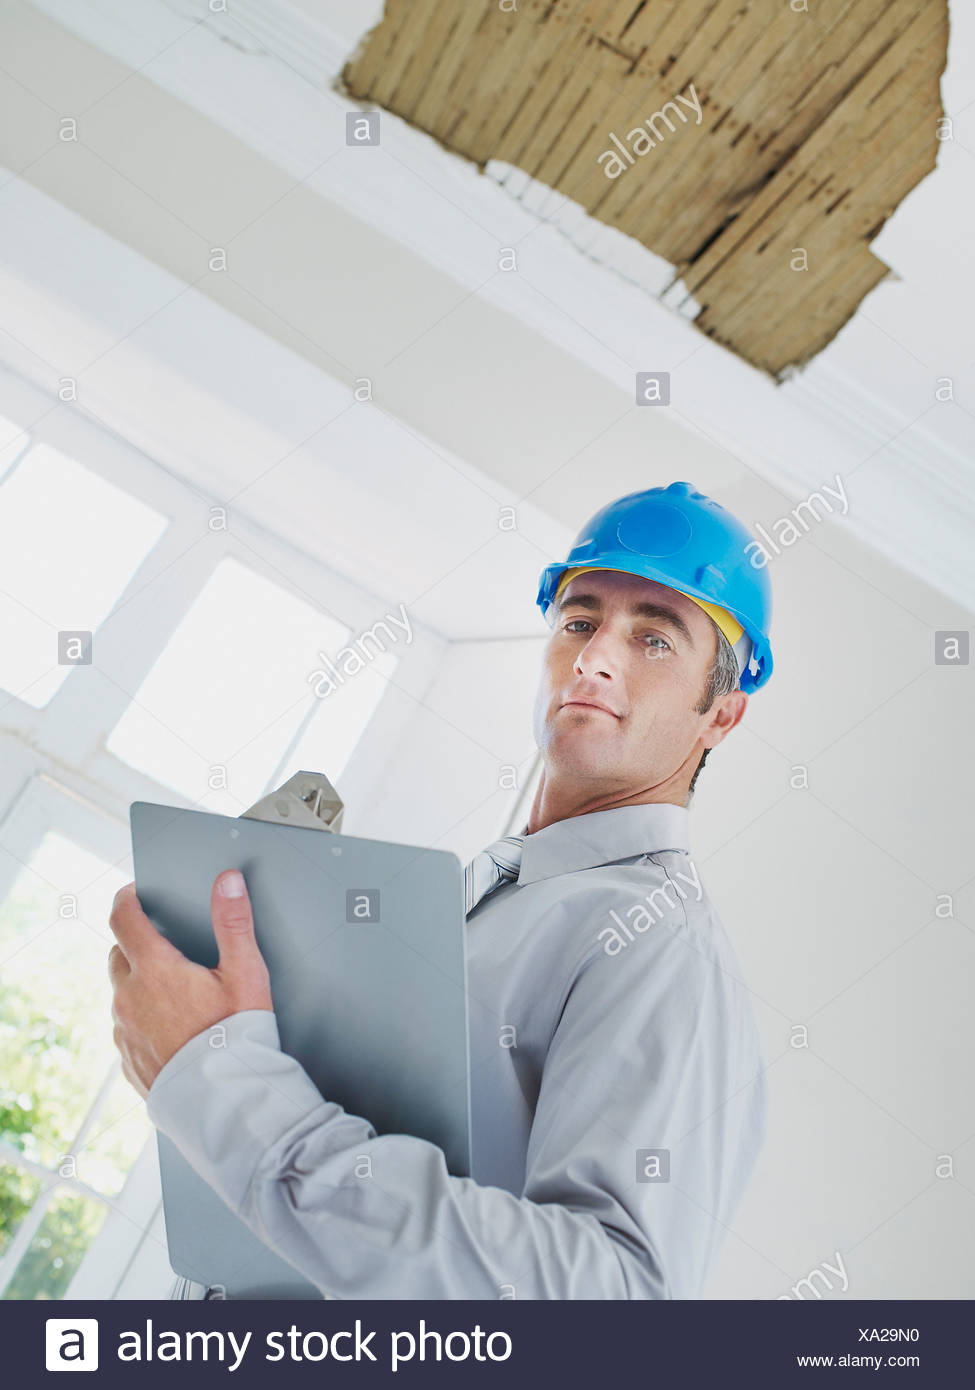 Man with clipboard and helmet in house with damaged ceiling - Stock Image